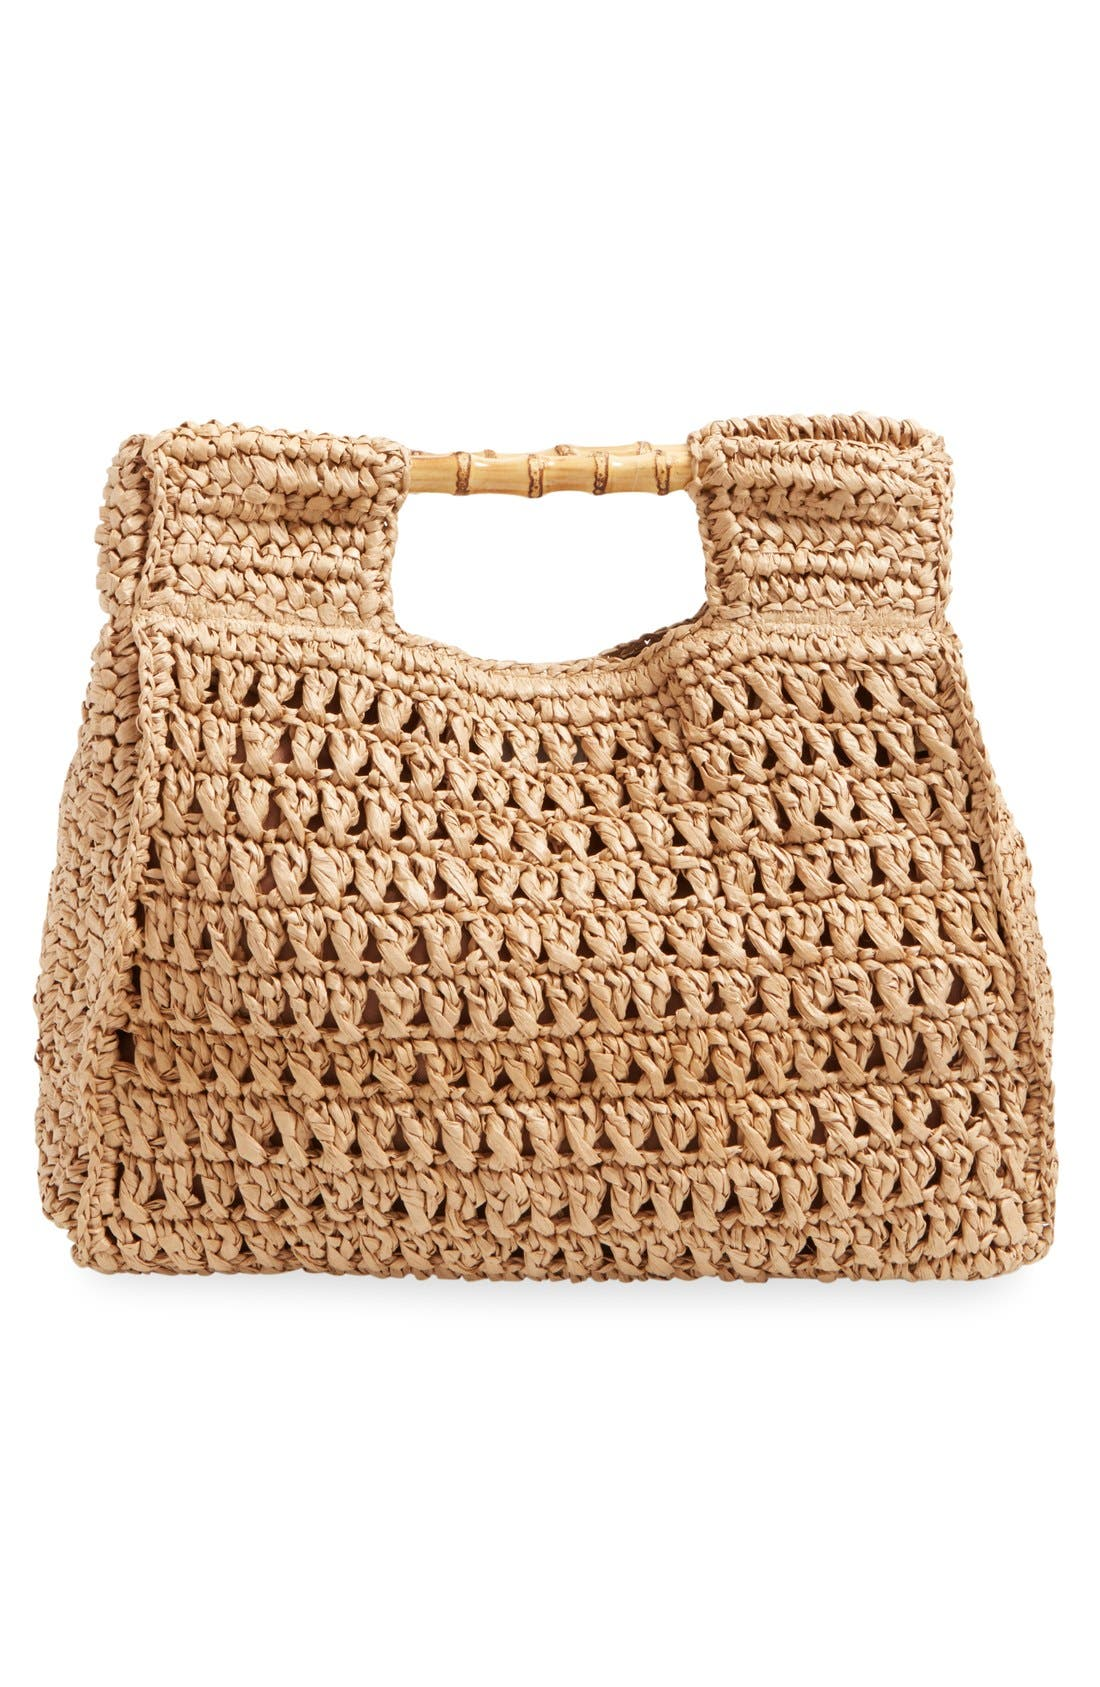 SAN DIEGO HAT, Woven Straw Tote, Alternate thumbnail 4, color, 250